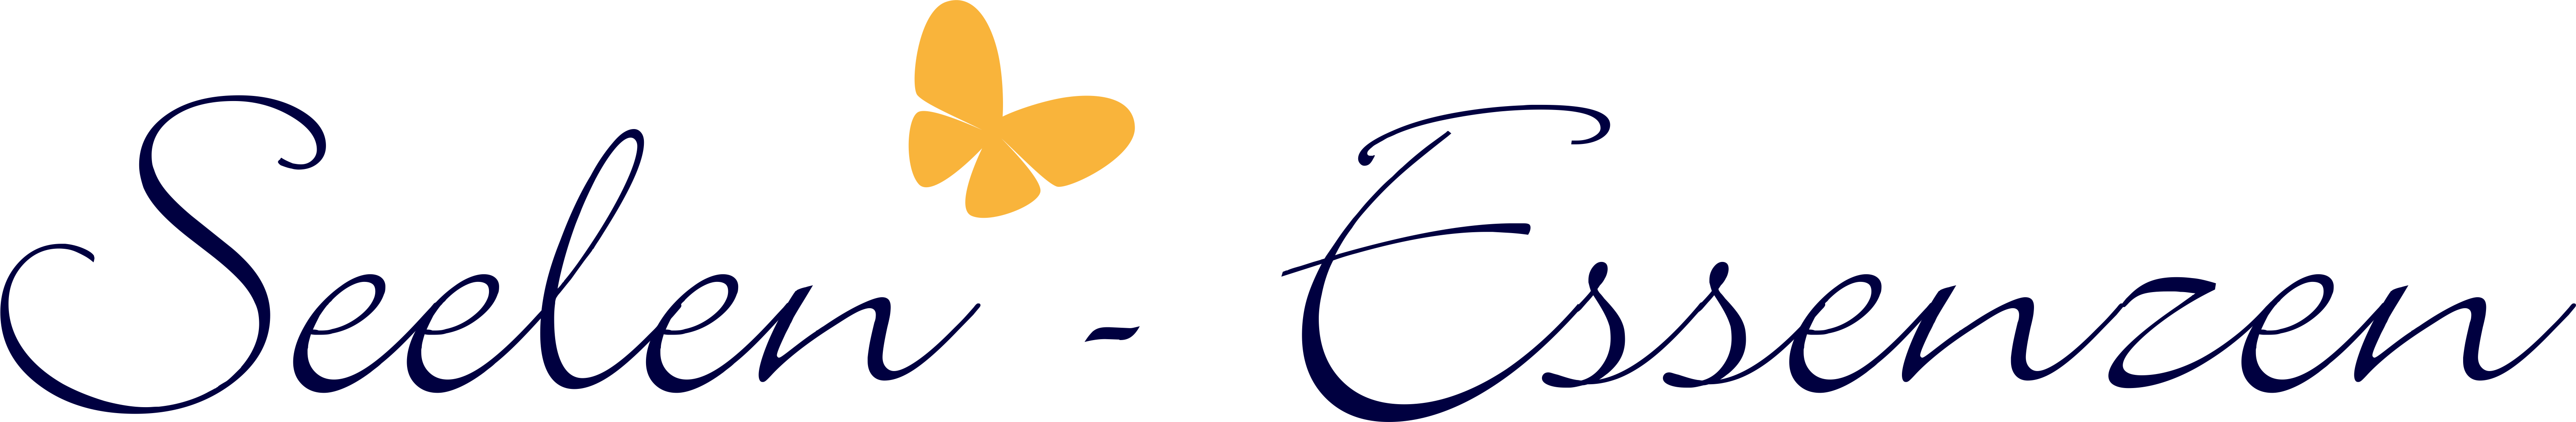 Seelen-Essenzen-Logo